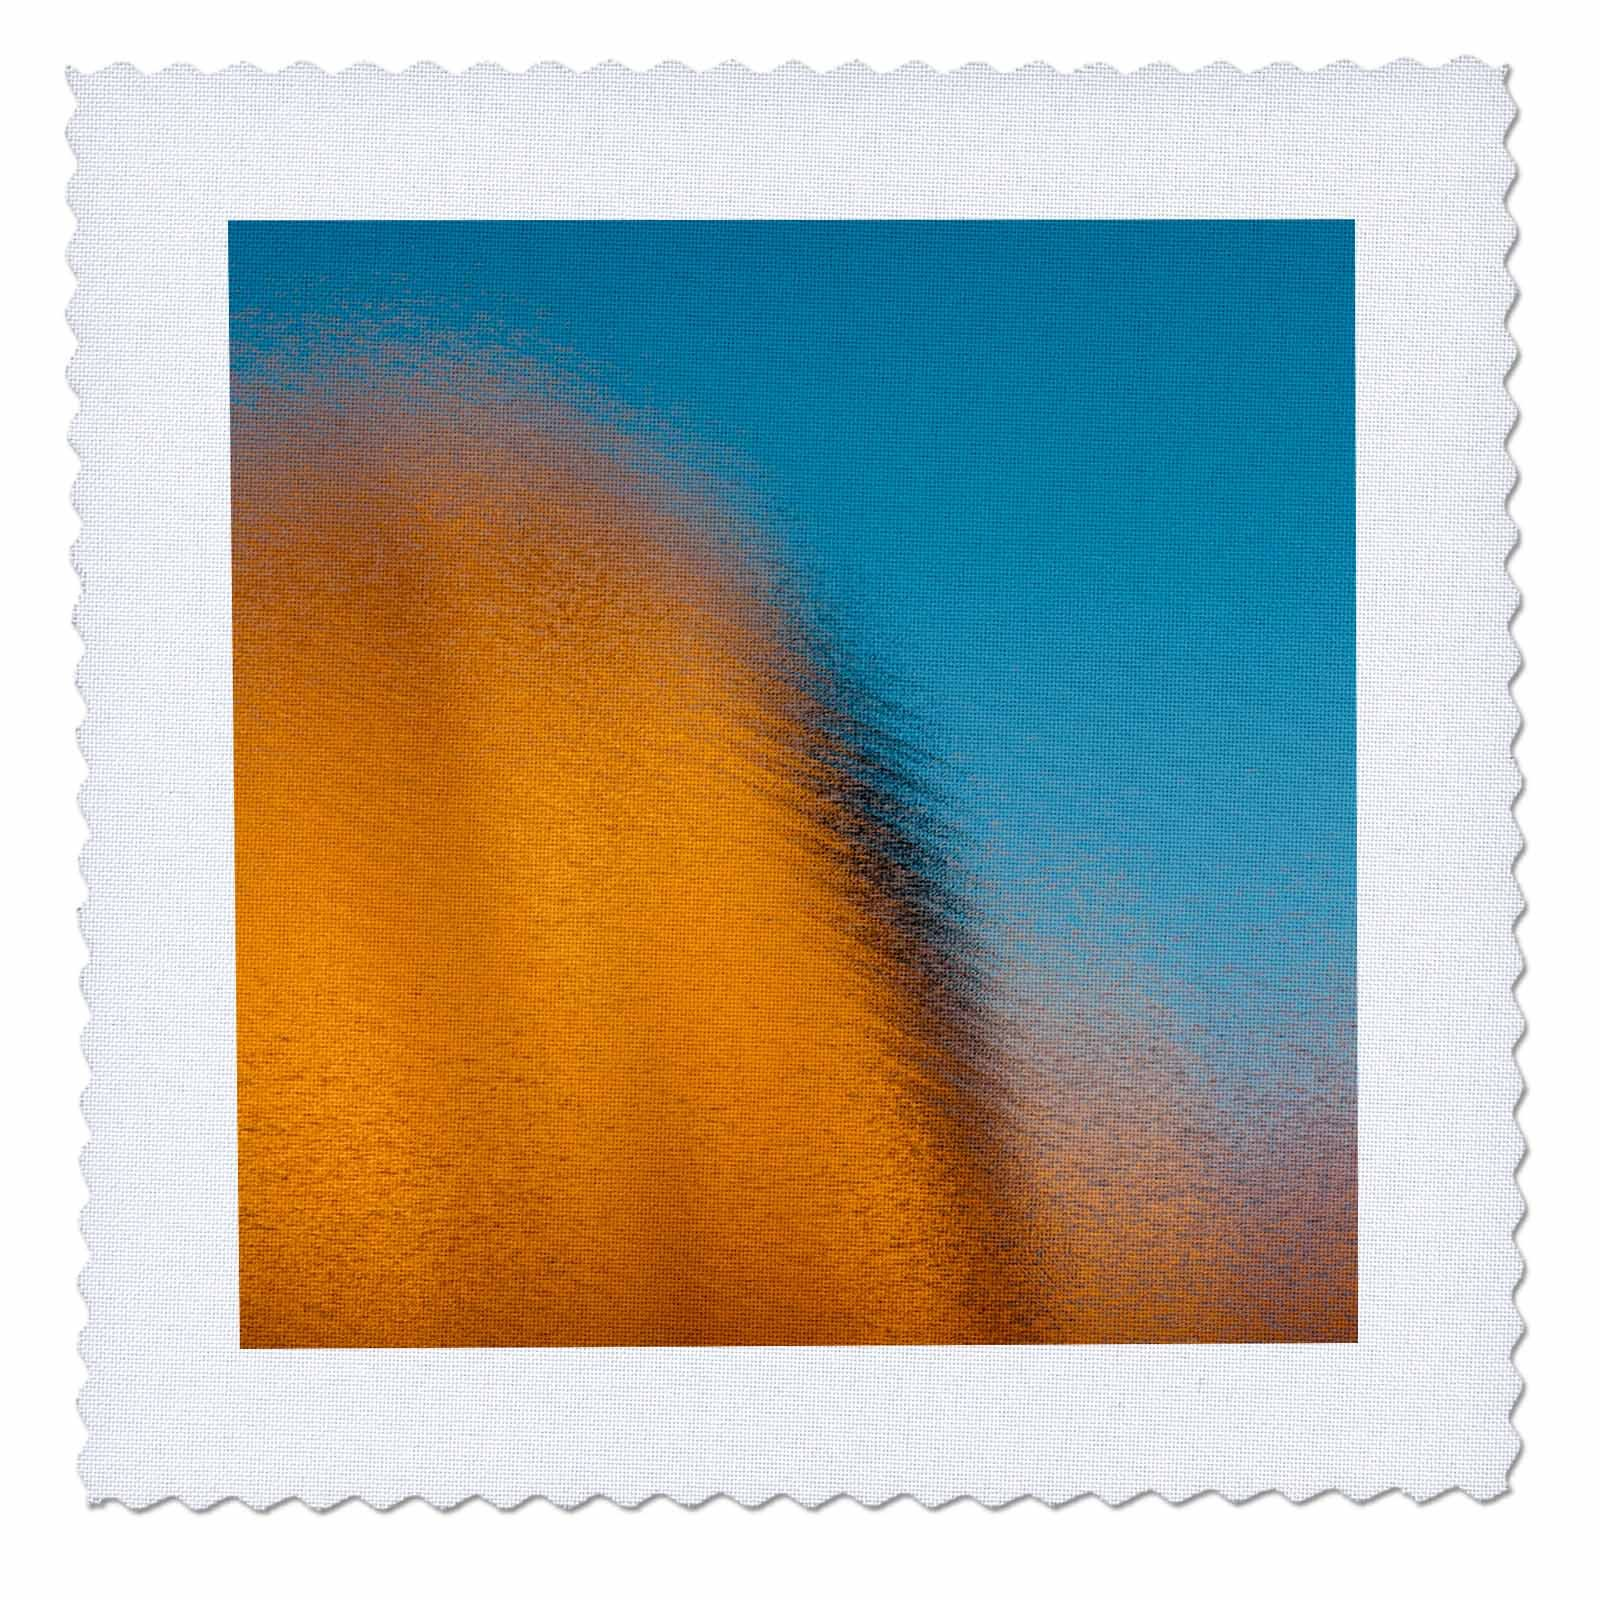 3dRose Danita Delimont - Abstracts - Utah. Abstract reflections of canyon walls on Lake Powell. - 18x18 inch quilt square (qs_260236_7)